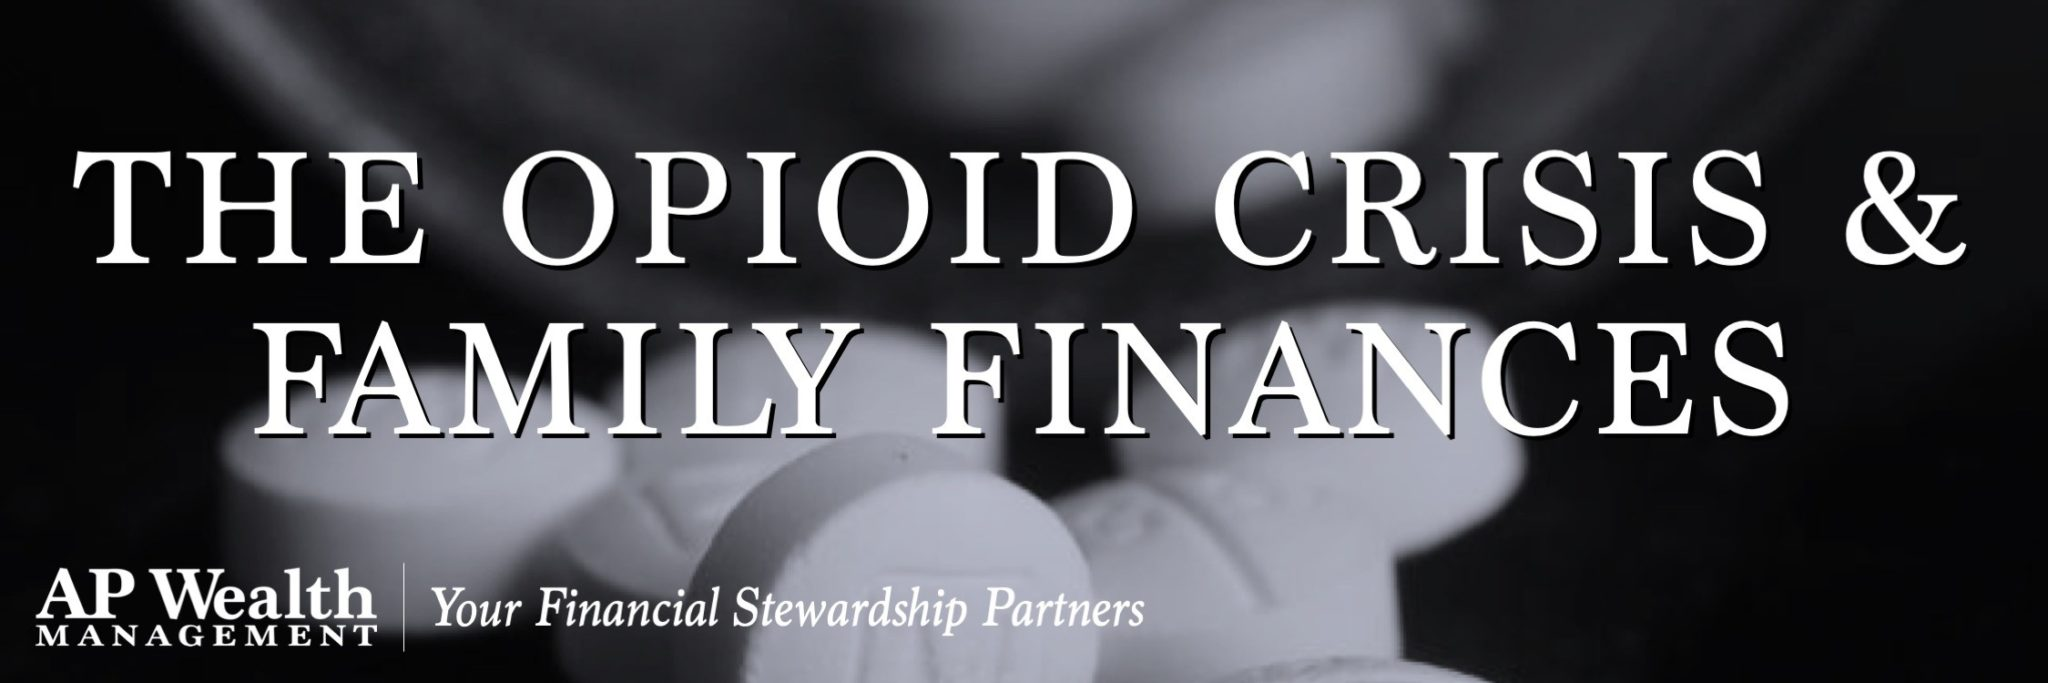 The Opioid Crisis and Family Finances